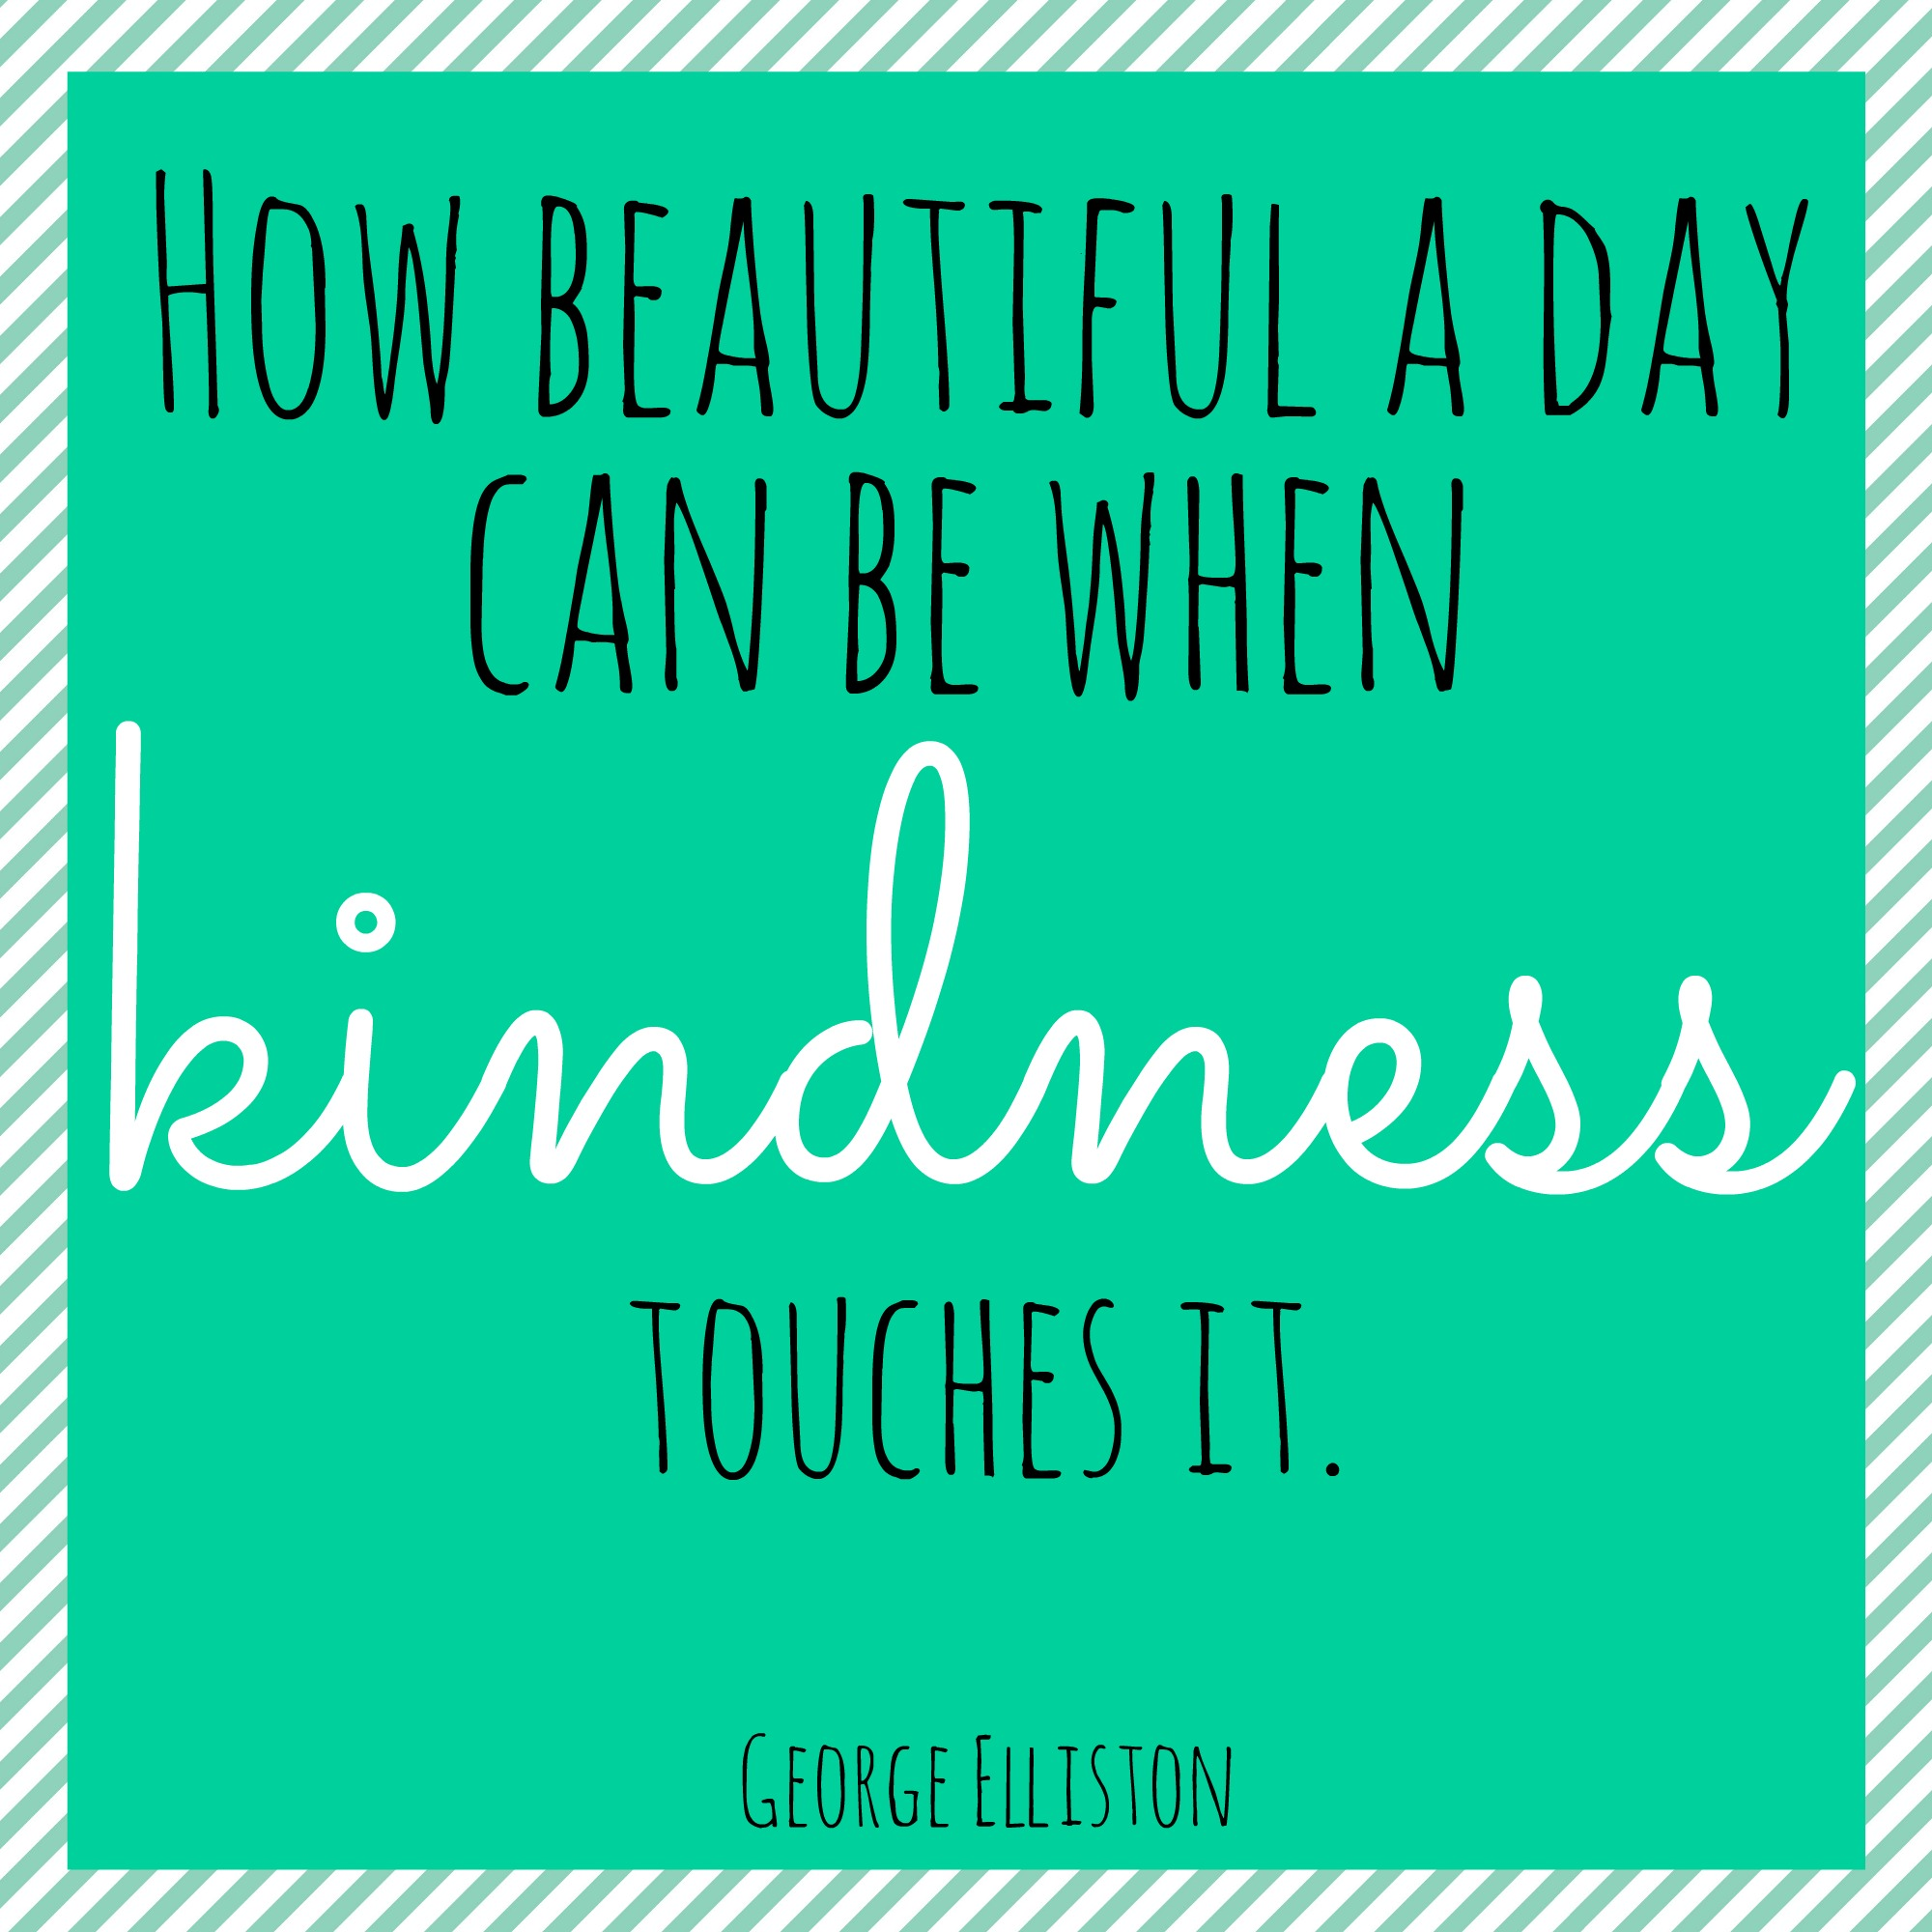 Random Acts of Kindness Ideas 21-40 {100 Days of Kindness}